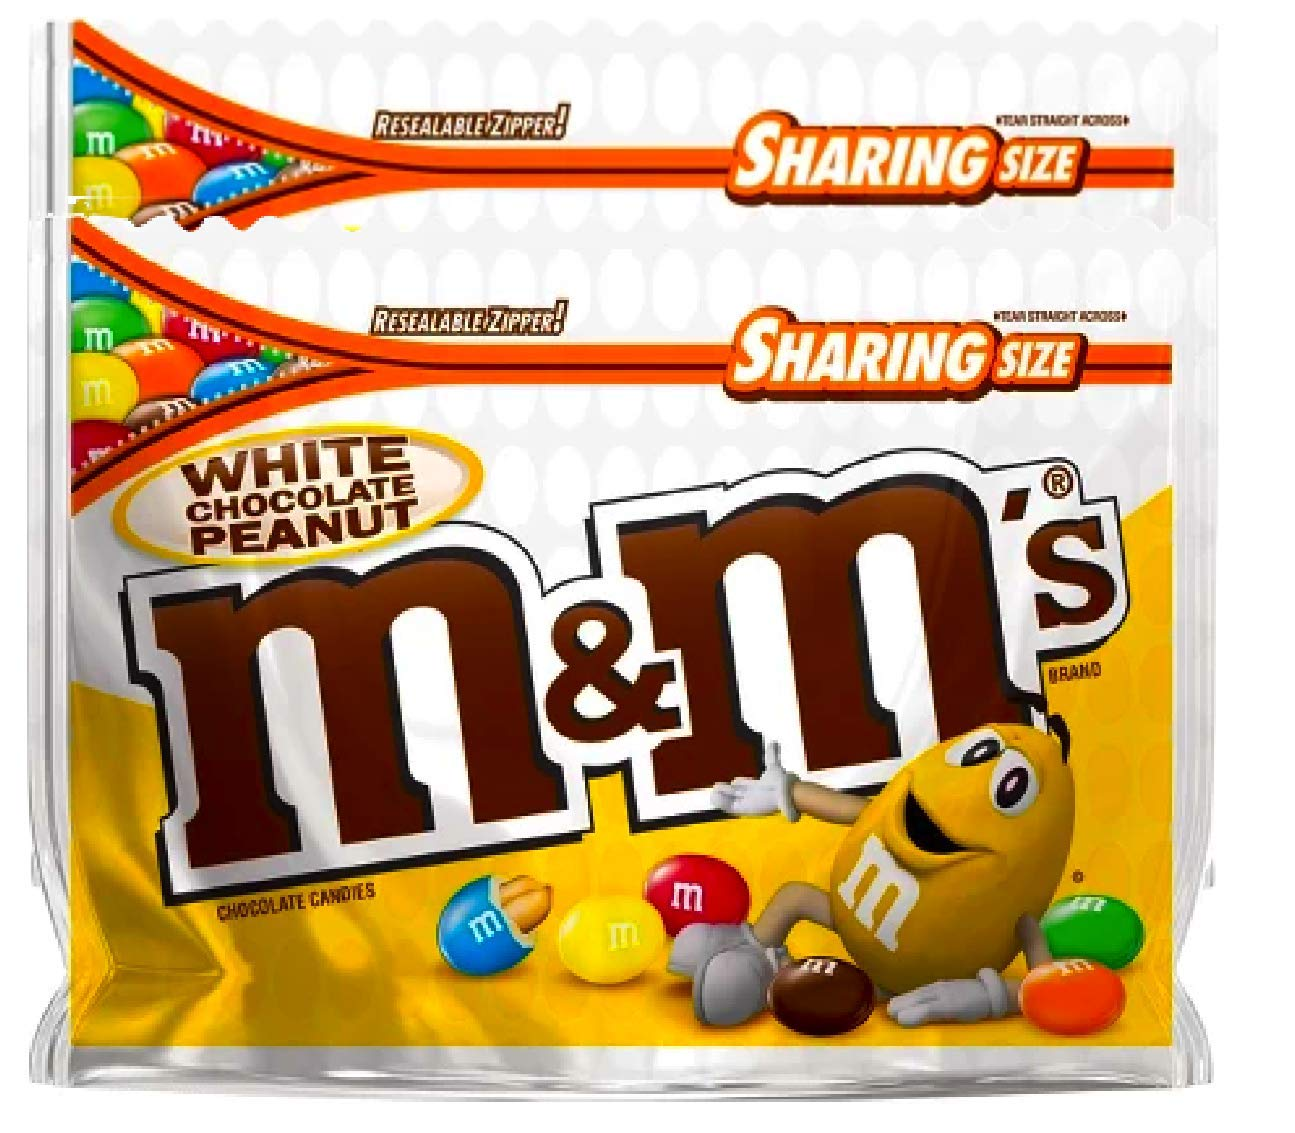 NEW M&M's White Chocolate Peanut Candies Limited edition- 9.6oz (2) by M&M'sCandy (Image #1)